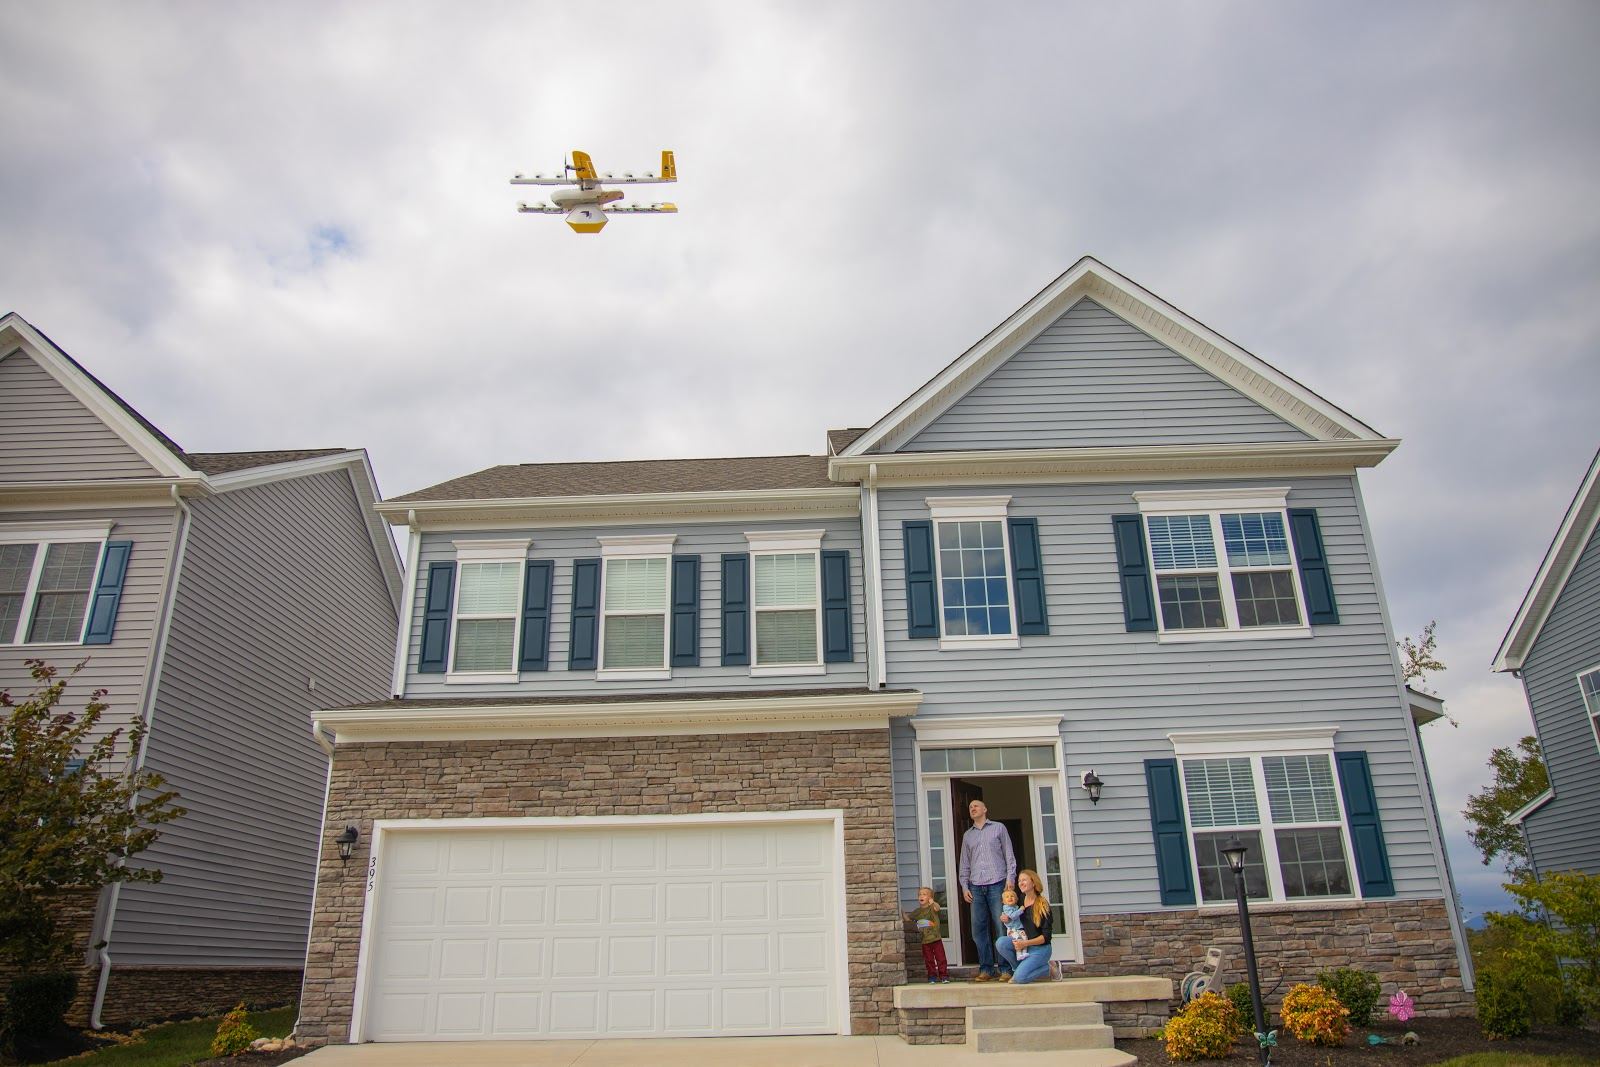 Drone delivering package to home